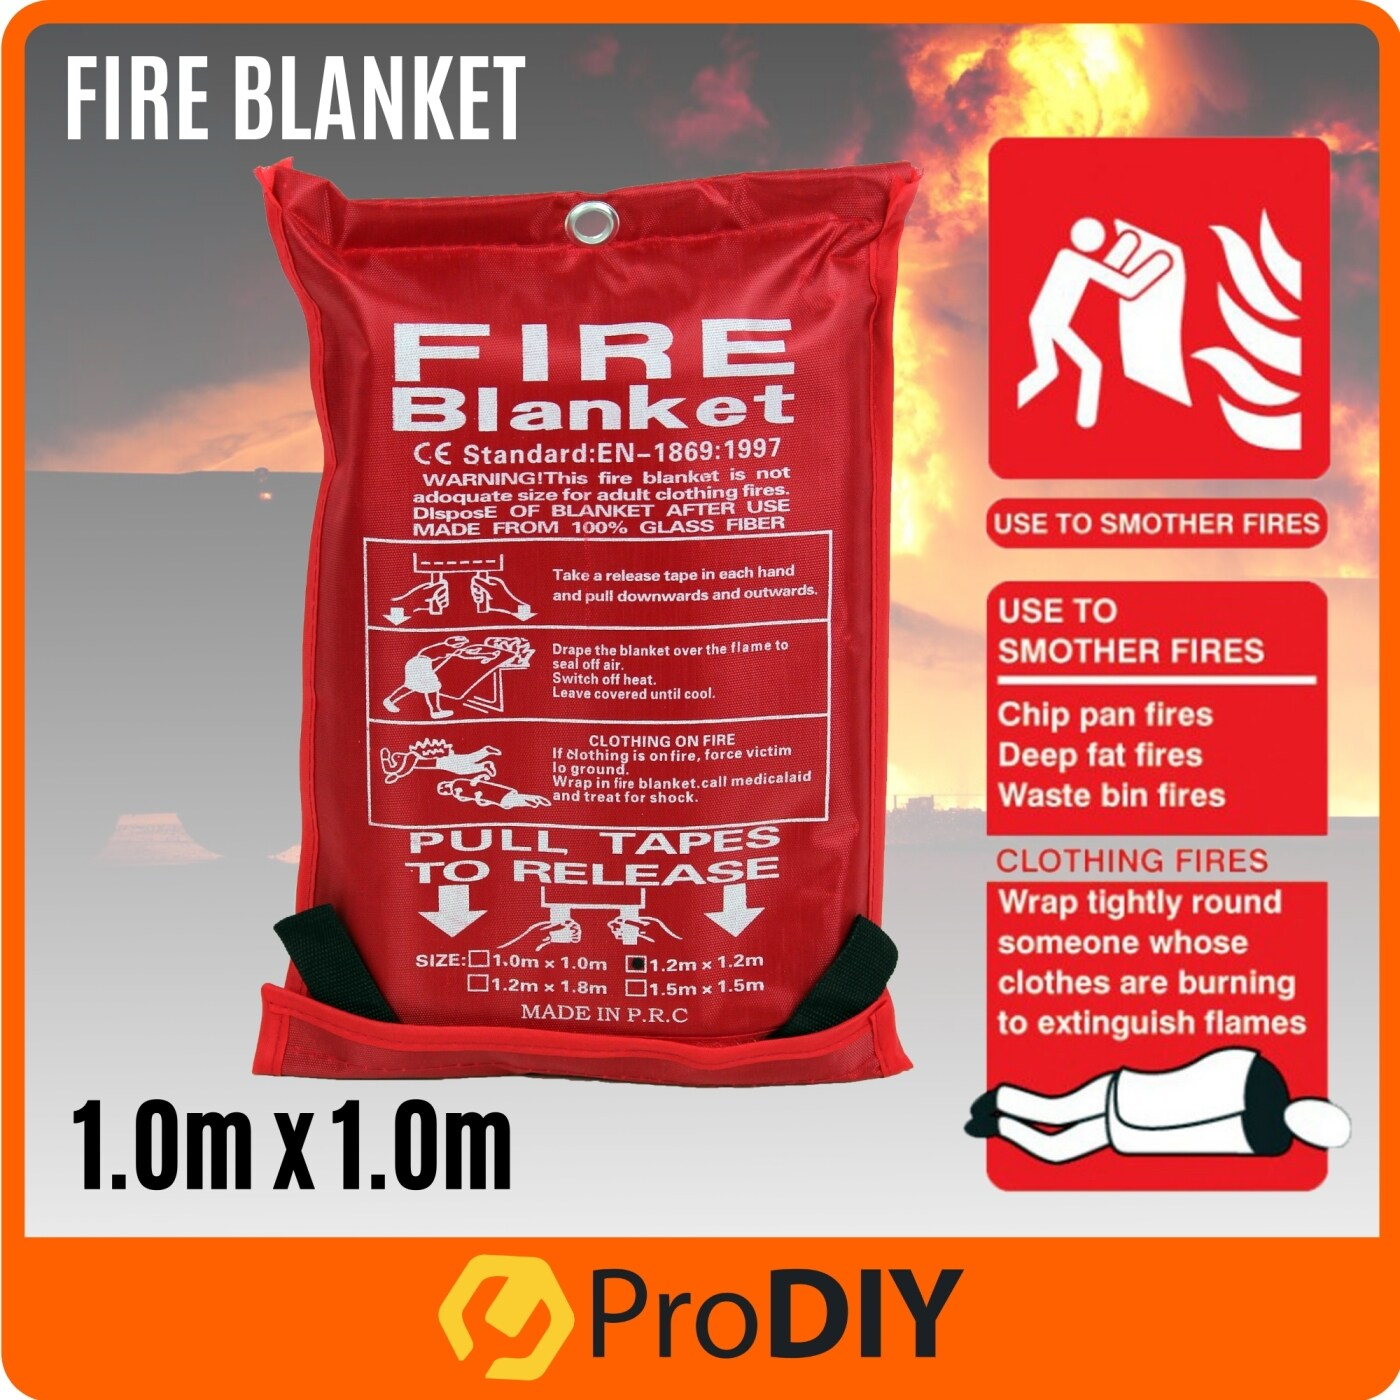 Home Fire Blanket Fiberglass Safety Fire Fighting Prevention ( 1.0m x 1.0m / 1.2m x 1.2m / 1.2m x 1.8m )